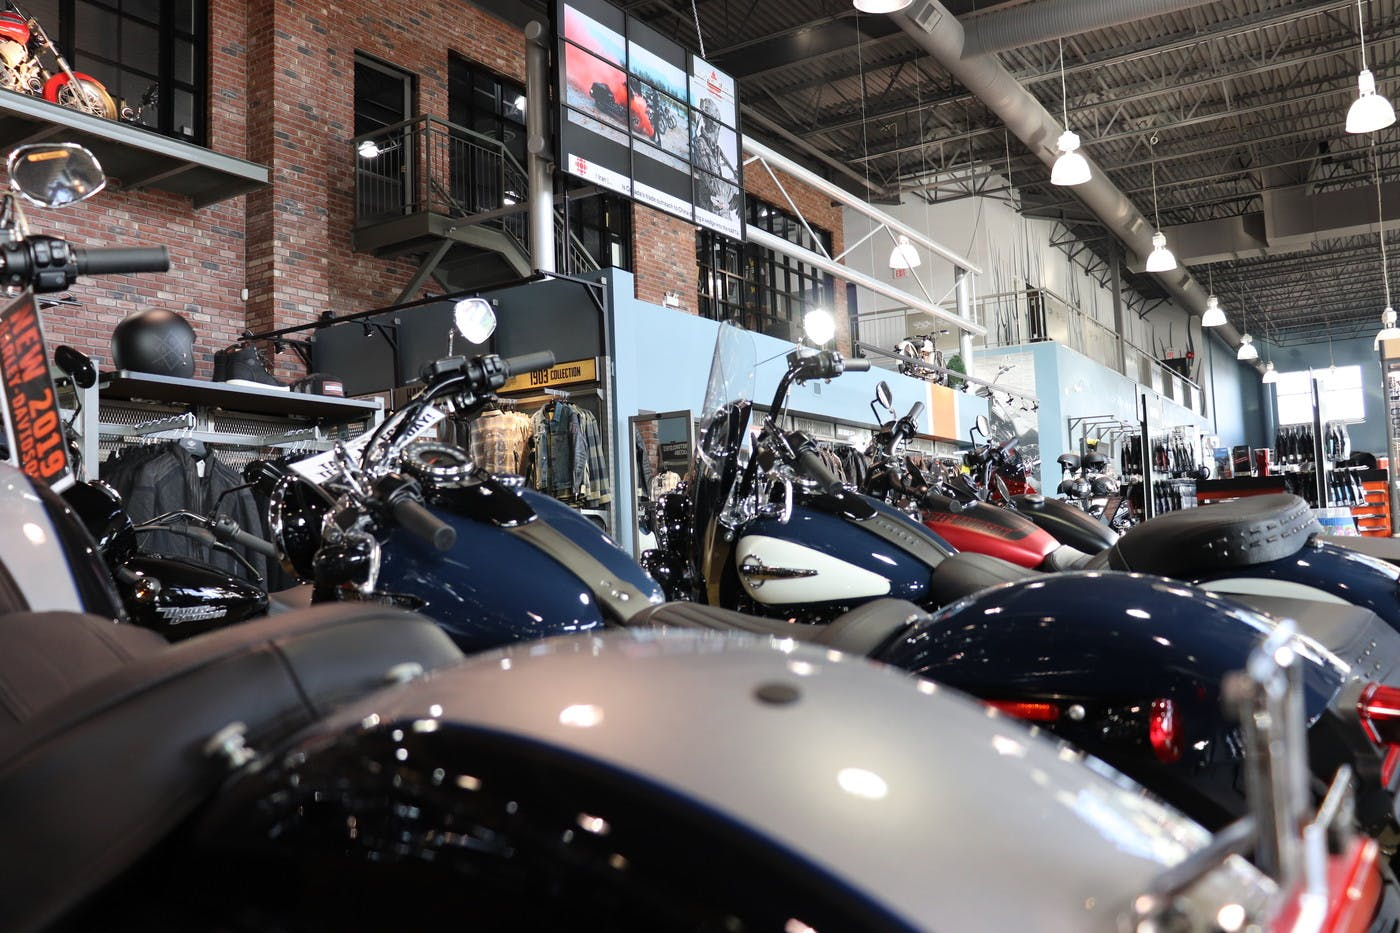 How Dealership Barnes Harley-Davidson Uses ScreenCloud to Deliver Engaging Promotional Materials to Customers